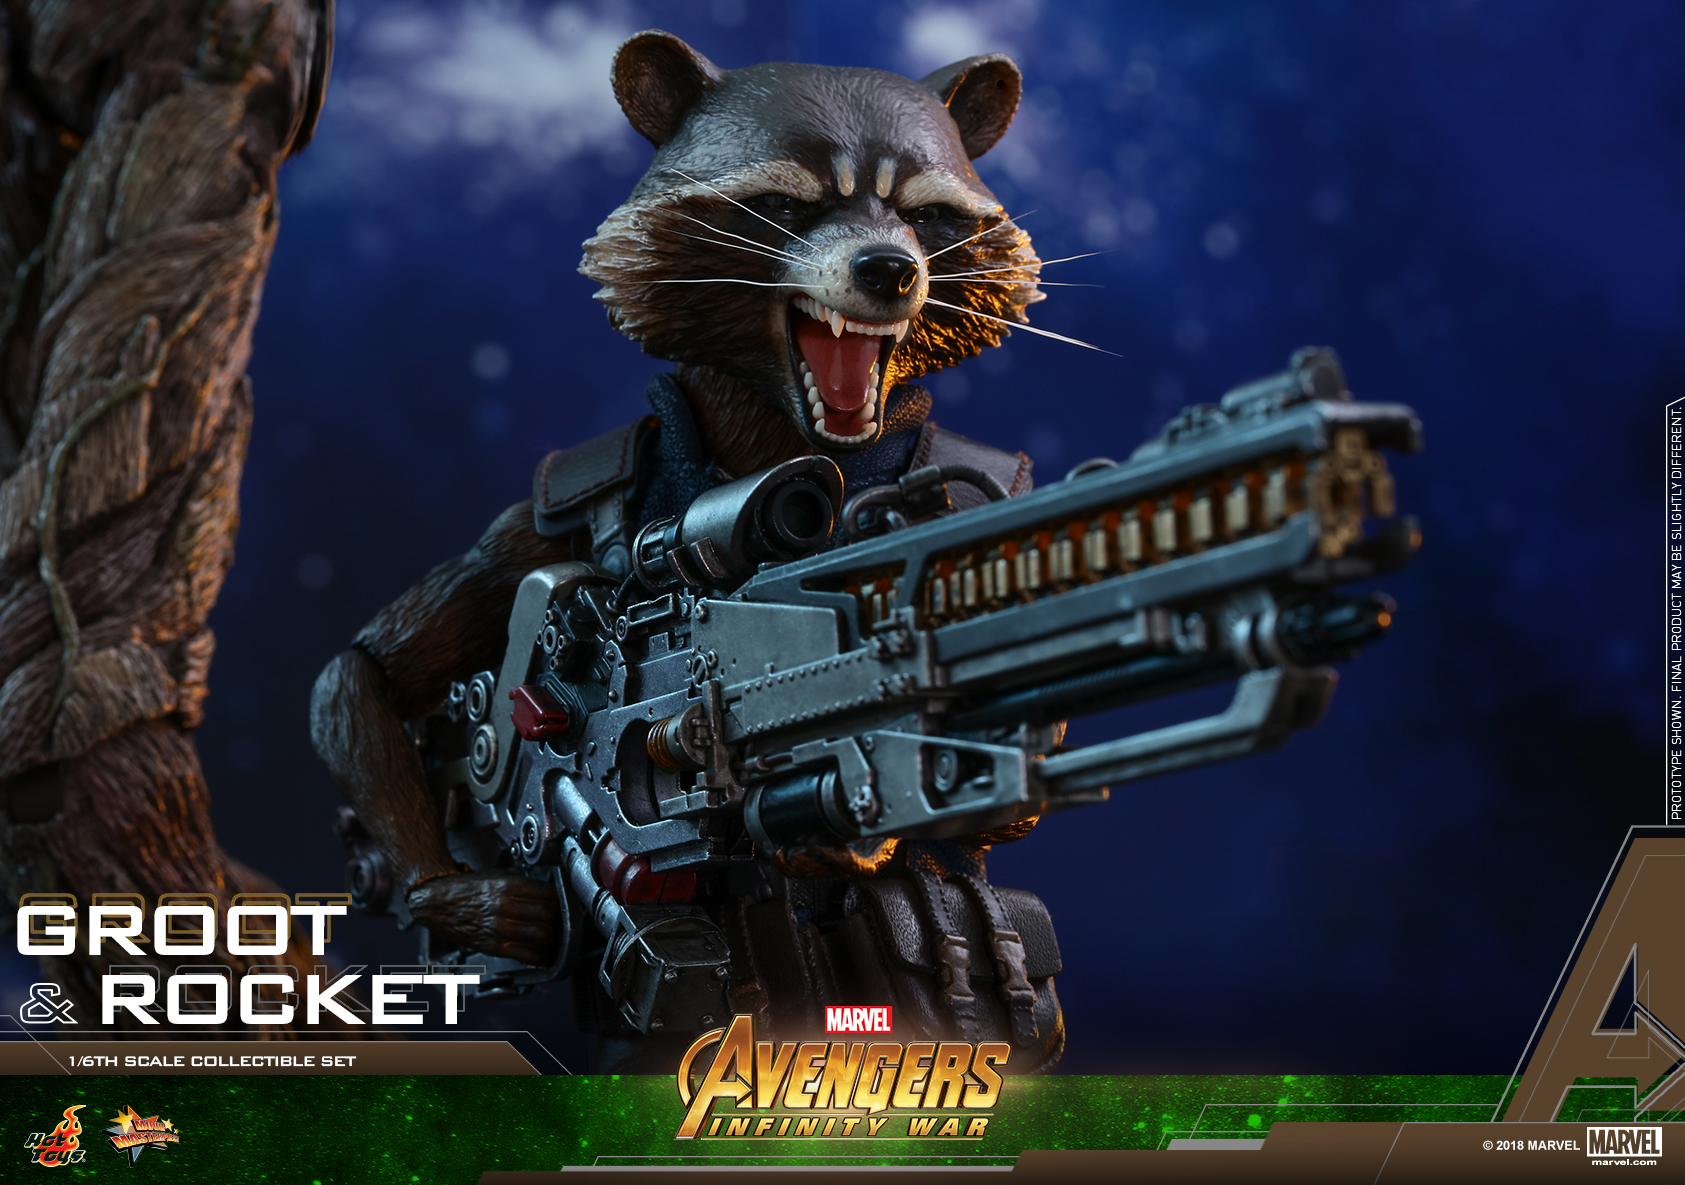 Hot Toys - AIW - Groot & Rocket collectible set_PR25